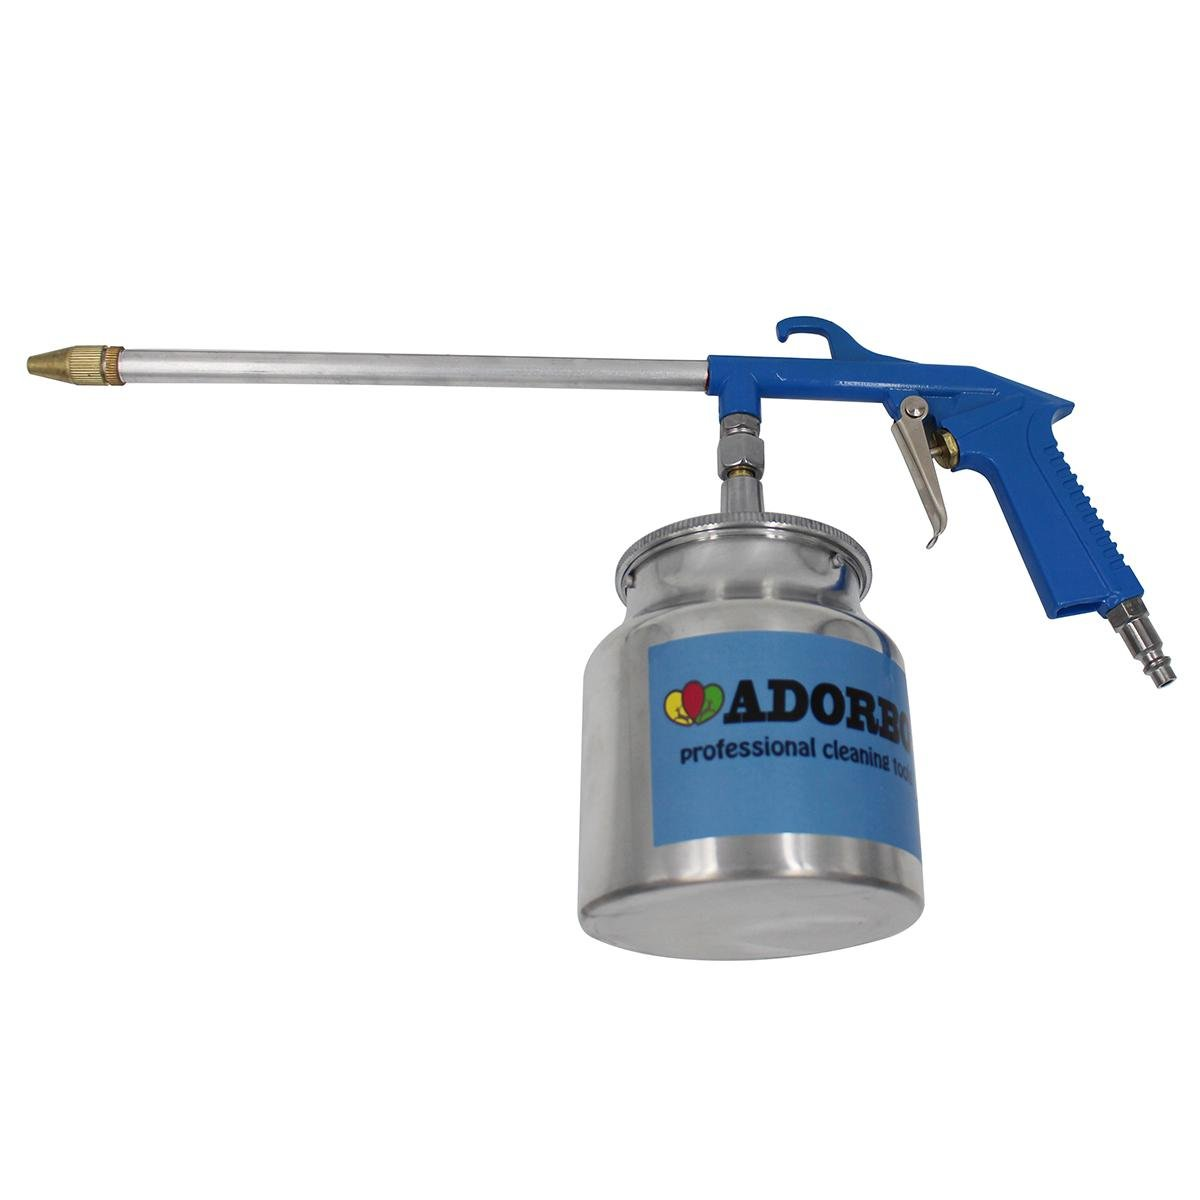 ADORBO Engine Cleaning Gun Solvent Air Sprayer Degreaser Automotive Tool by ADORBO